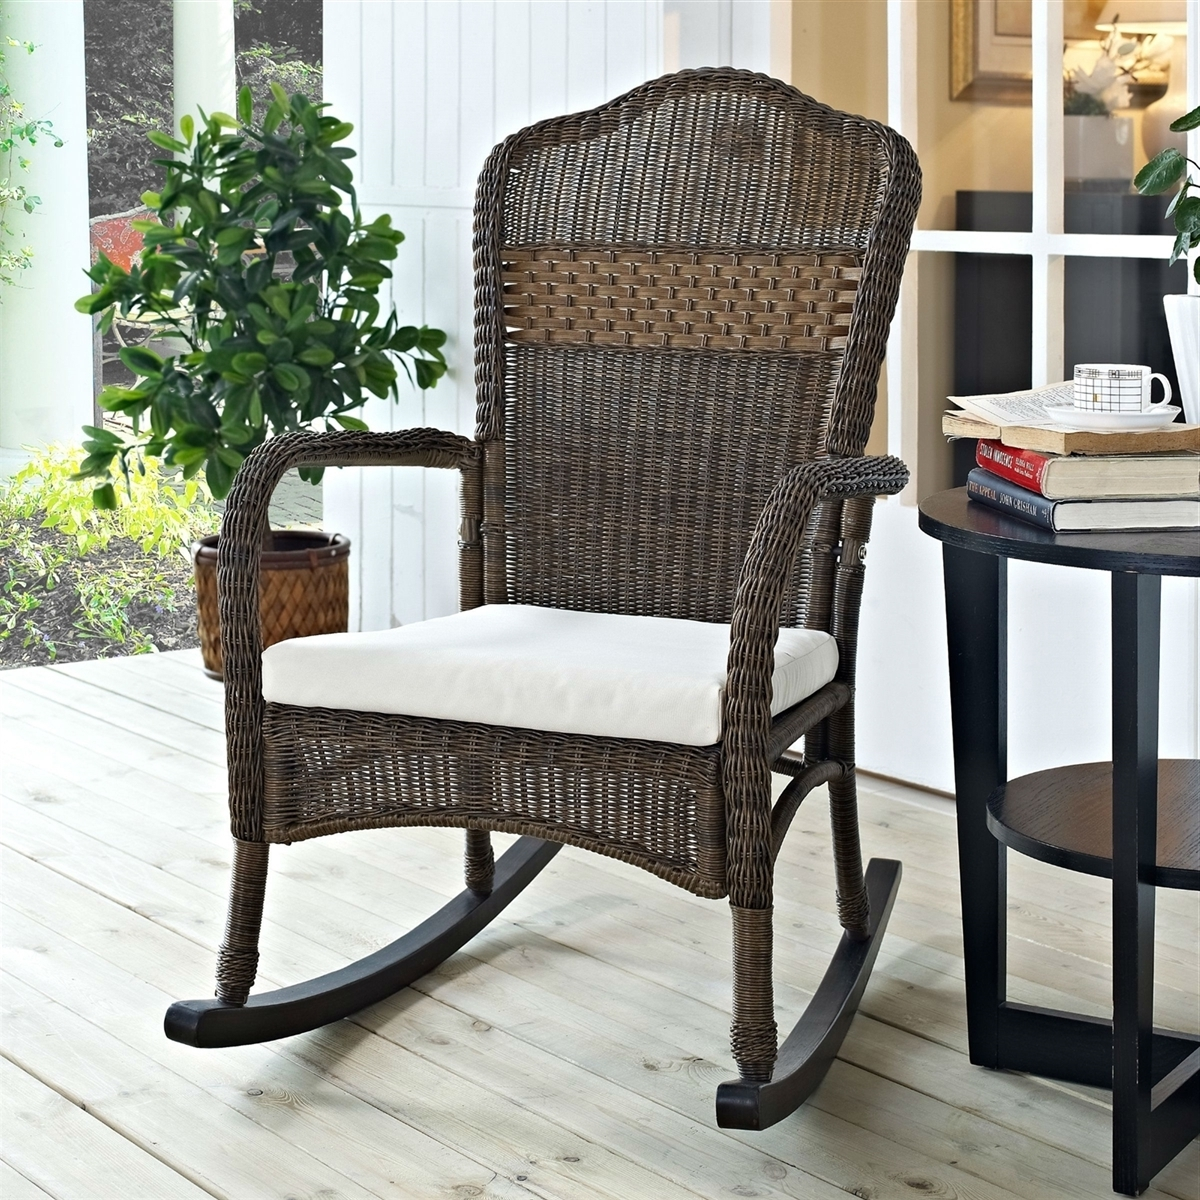 Patio Rocking Chairs With Cushions With Most Recent Wicker Patio Furniture Rocking Chair Mocha With Beige Cushion (View 12 of 20)